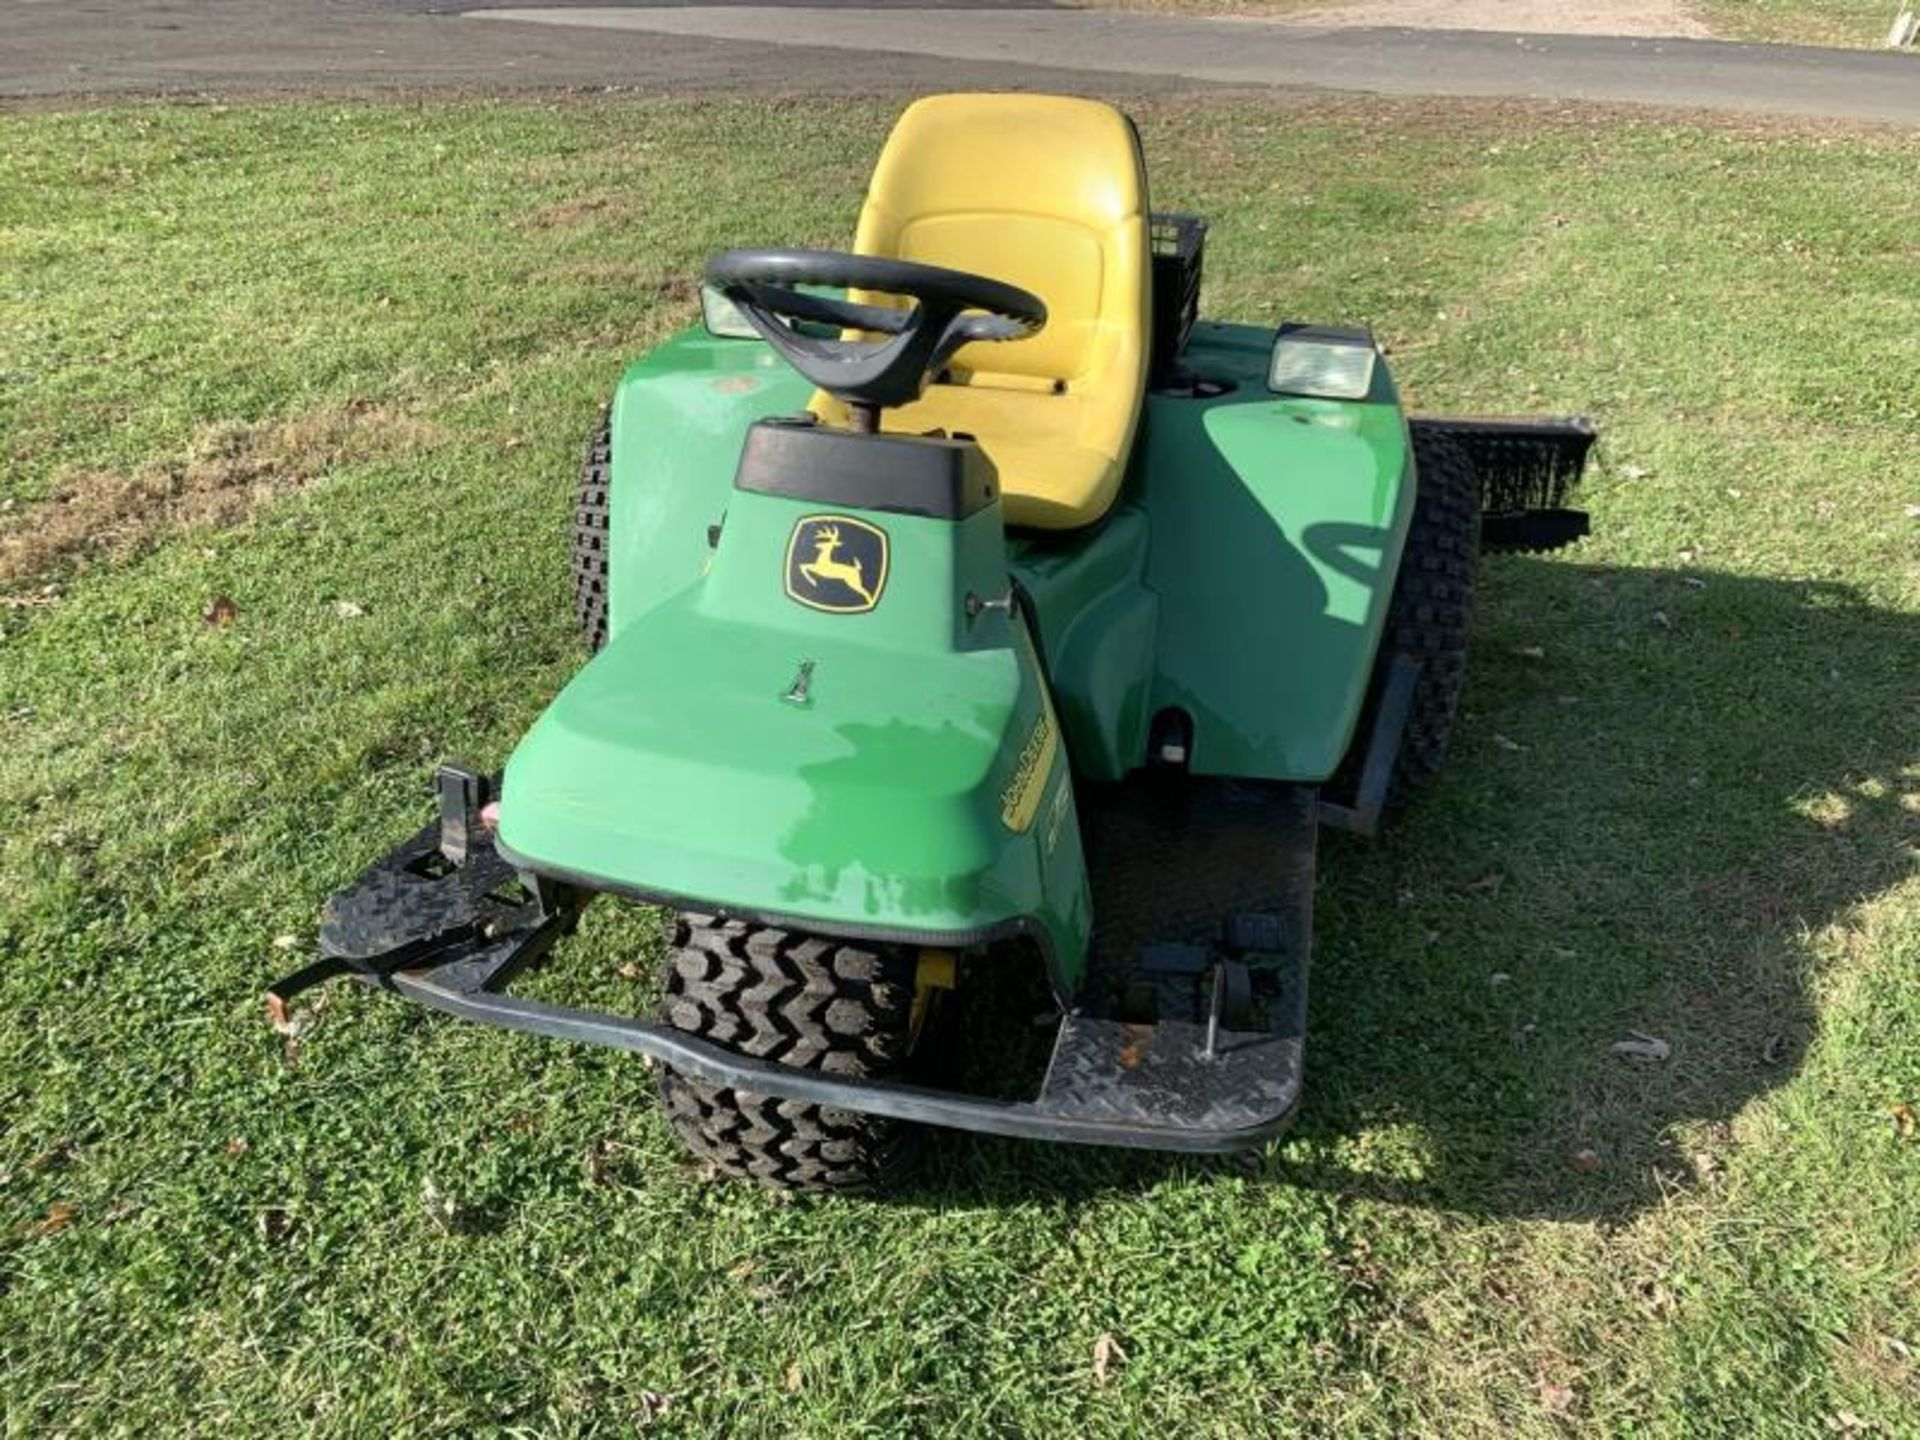 2016 Bunker Rake, John Deere 1200A , SN: 1TC1200AEGT230522 - Starts & Runs, Shifts Rough - Image 2 of 5